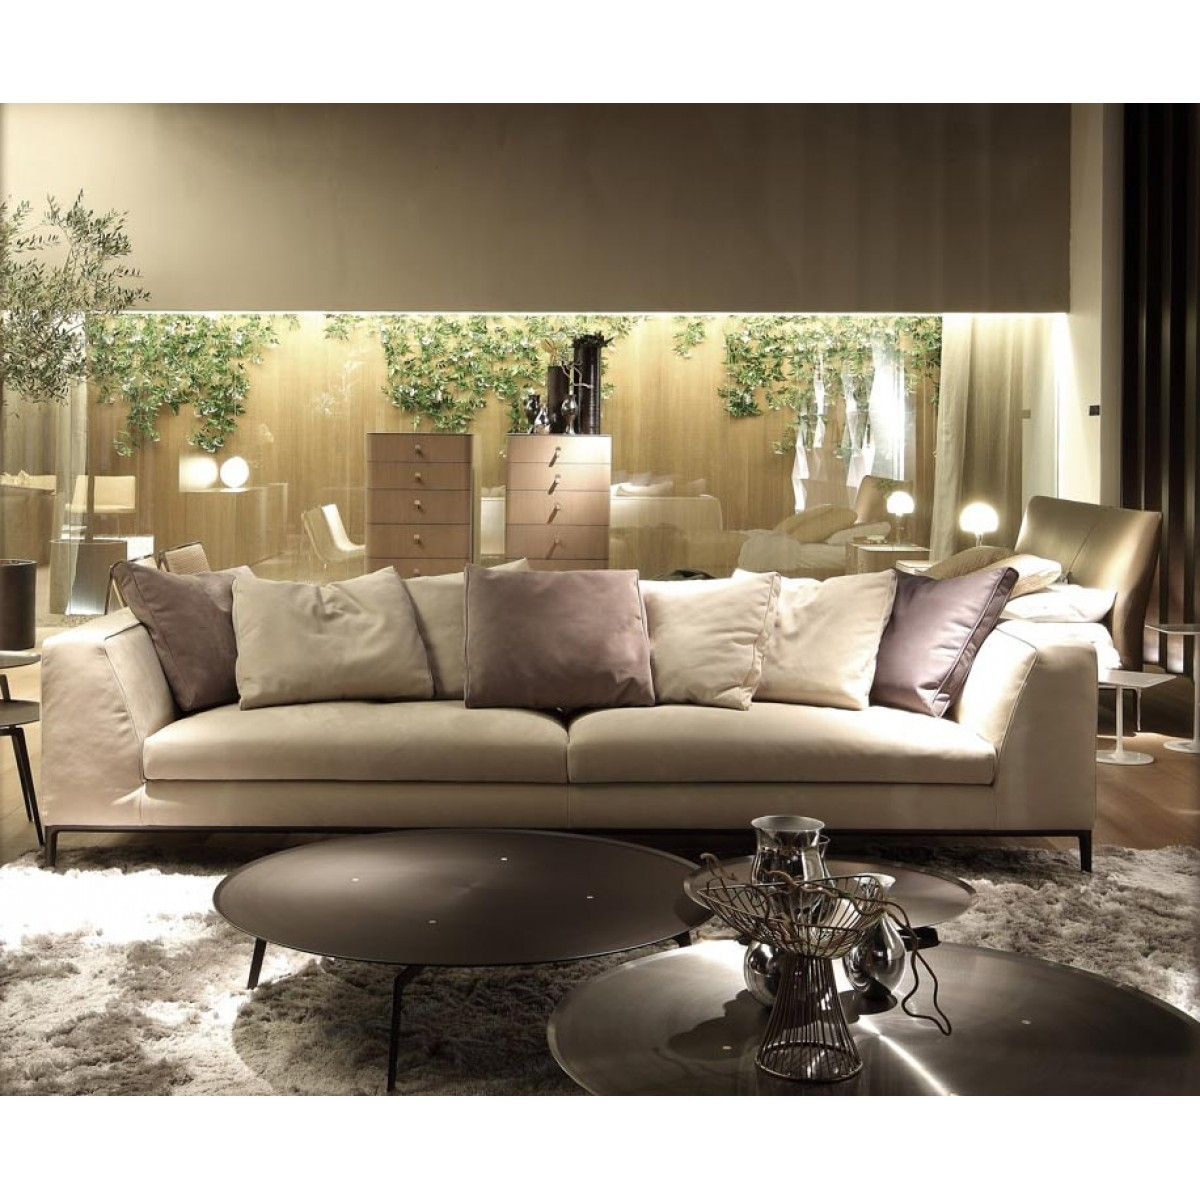 Cloud Extra Large Sofa | Large Sofa, Cloud And Interior Shop intended for Extra Large Sofas (Image 2 of 10)